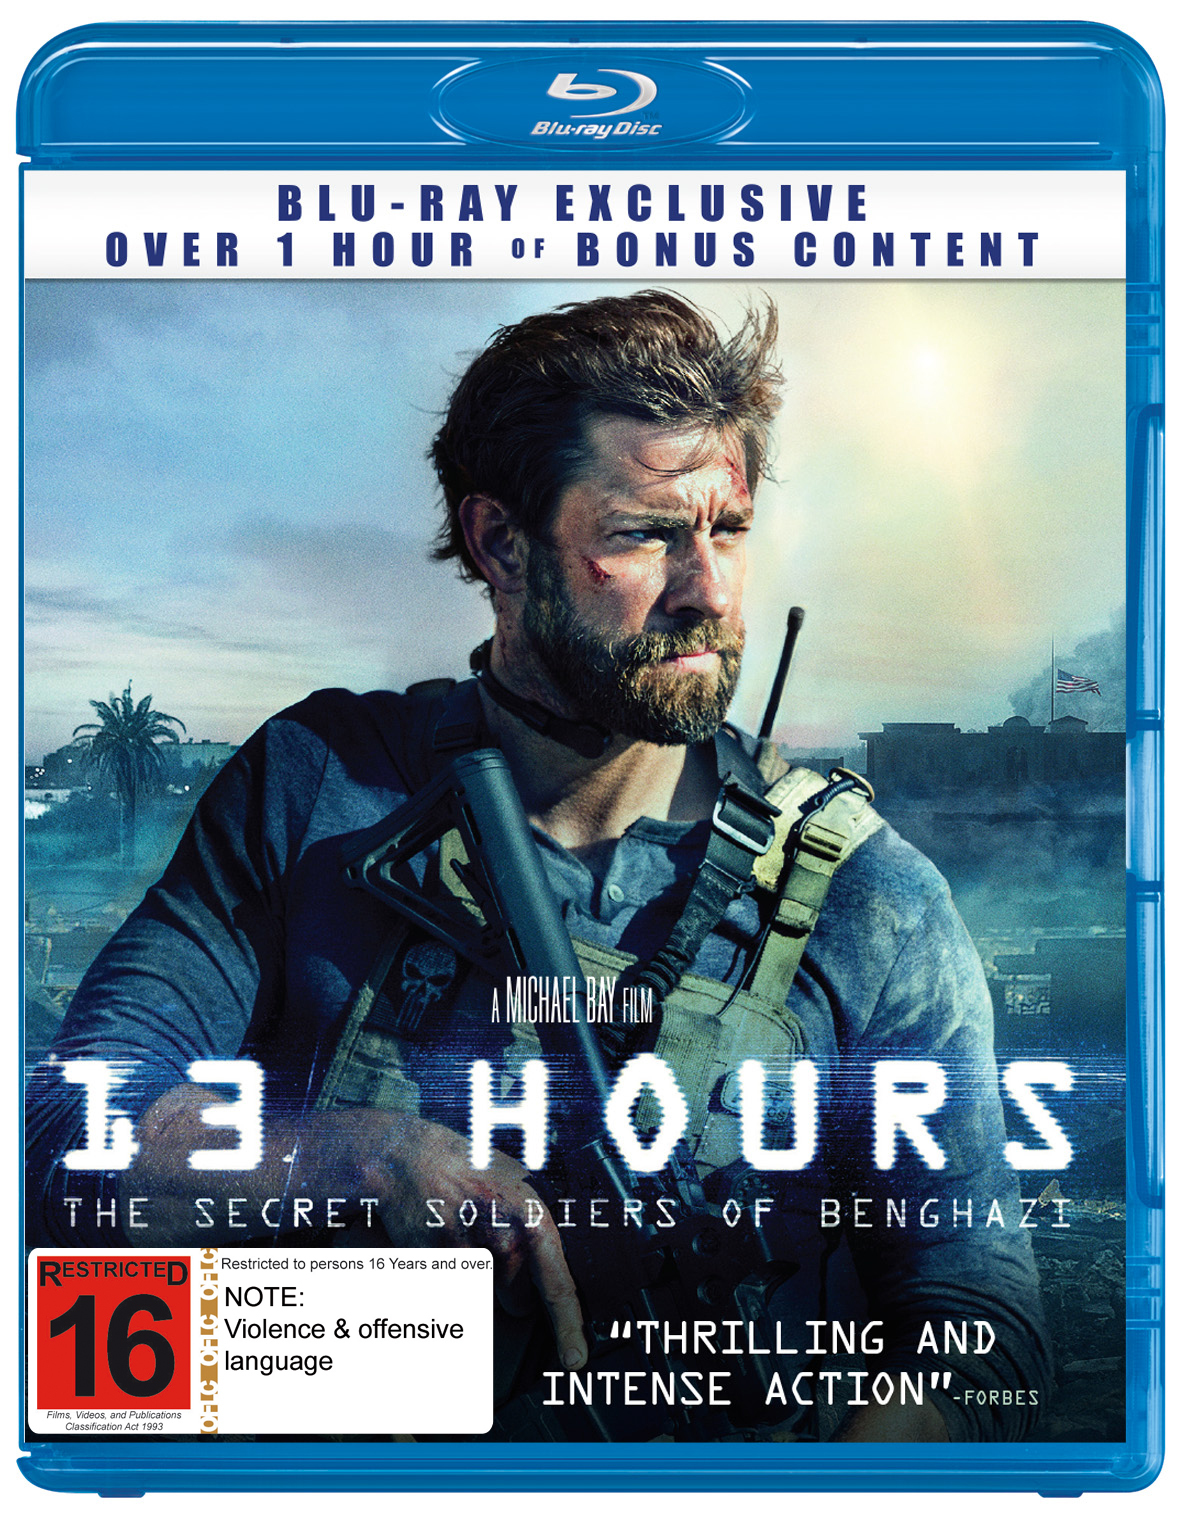 13 Hours: The Secret Soldiers Of Benghazi on Blu-ray image